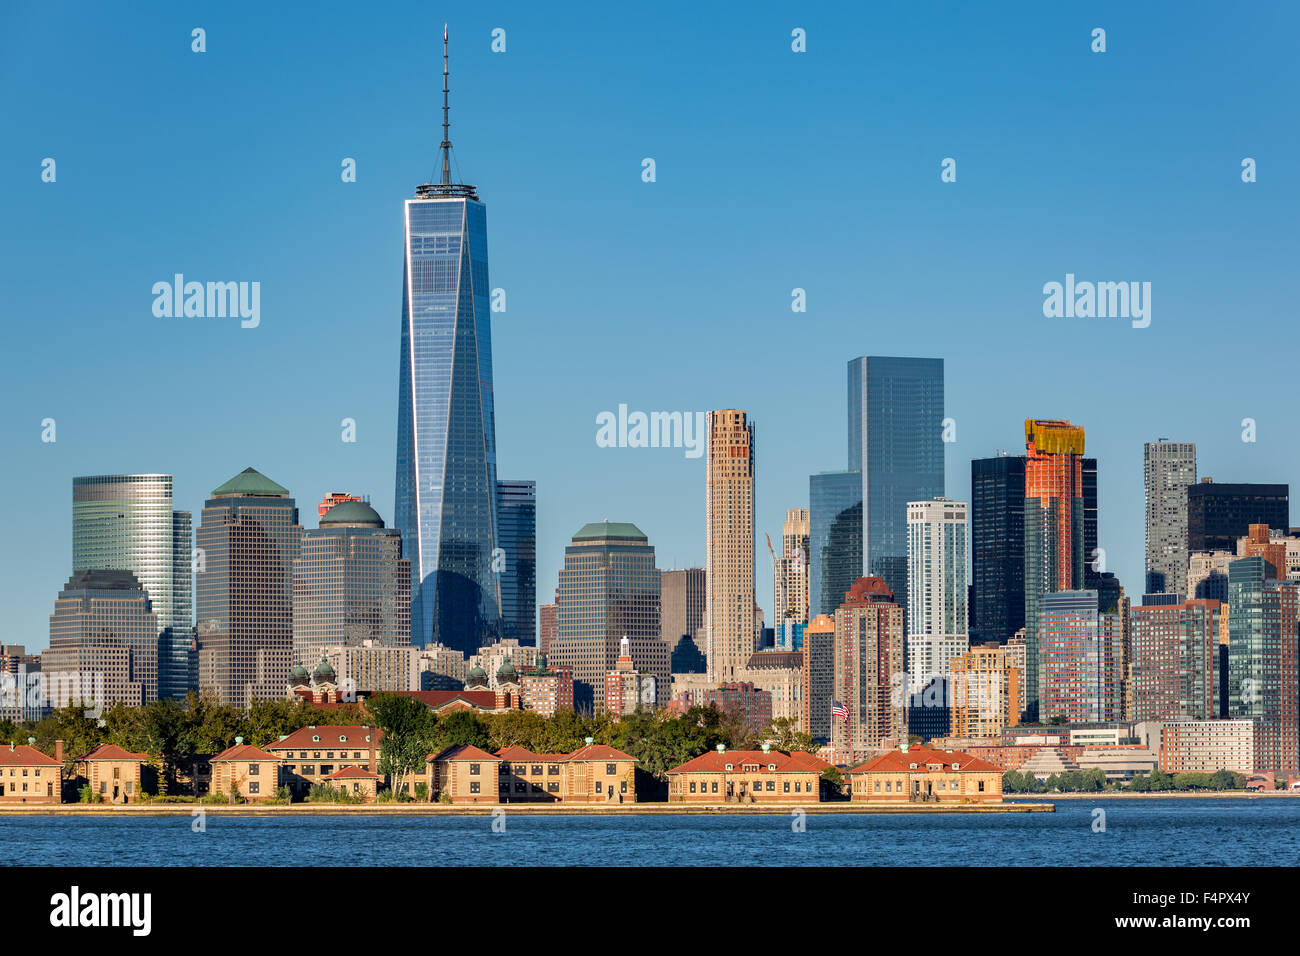 Downtown New York skyline with Ellis Island in the foreground - Stock Image